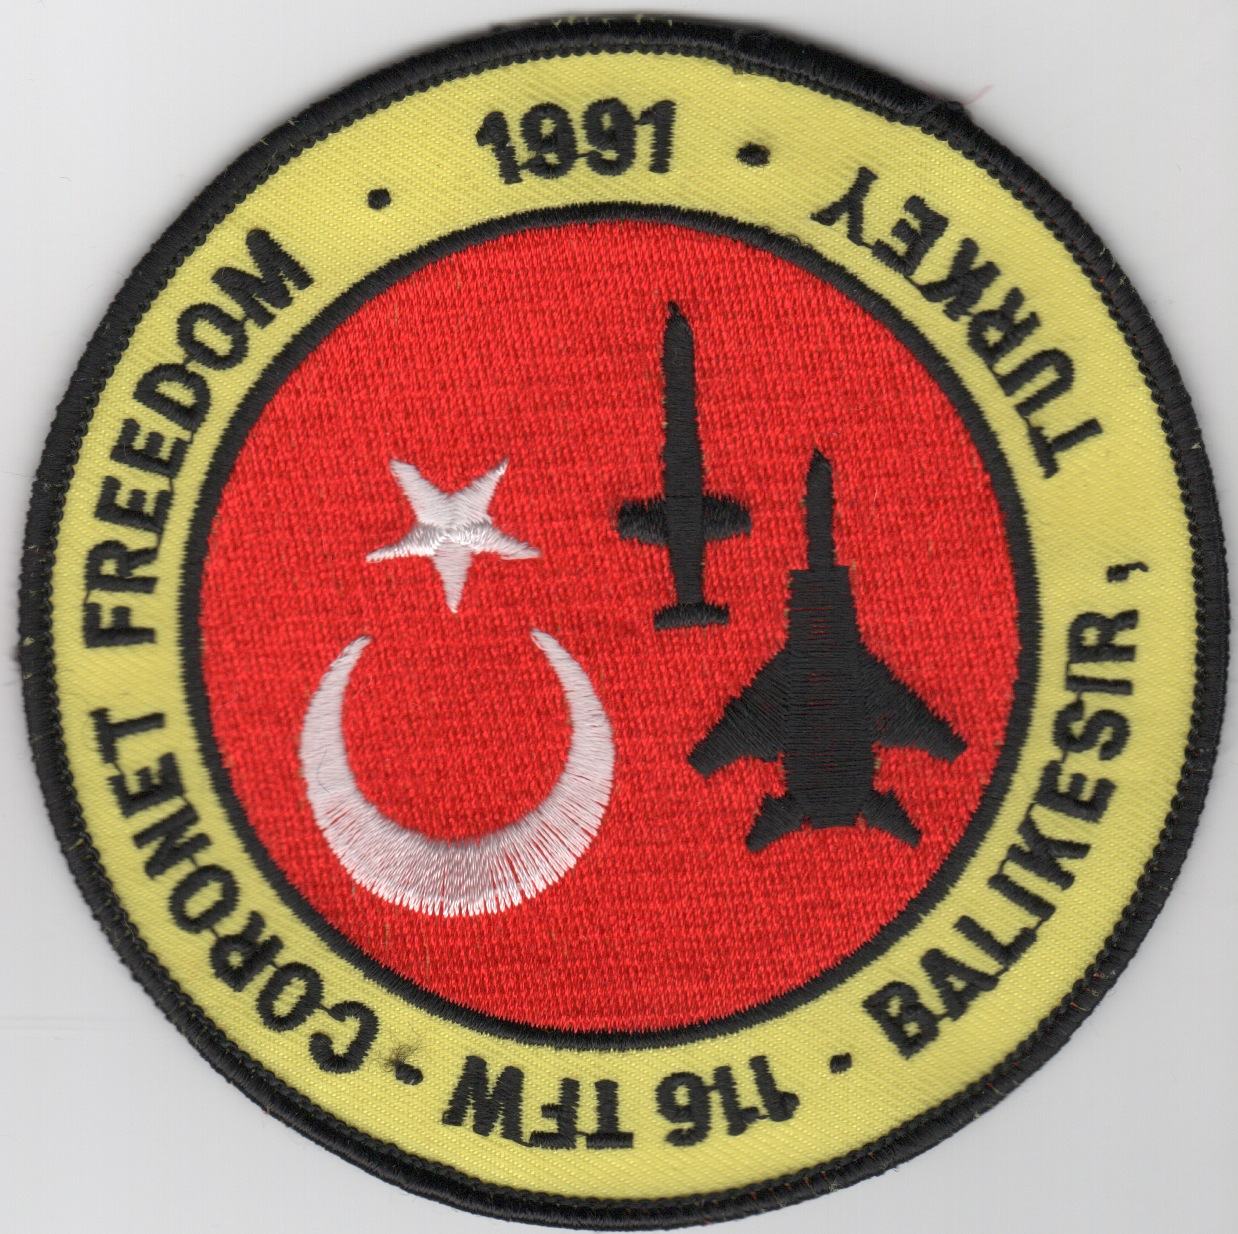 116TFW 1991 'Coronet Freedom' Patch (Original)